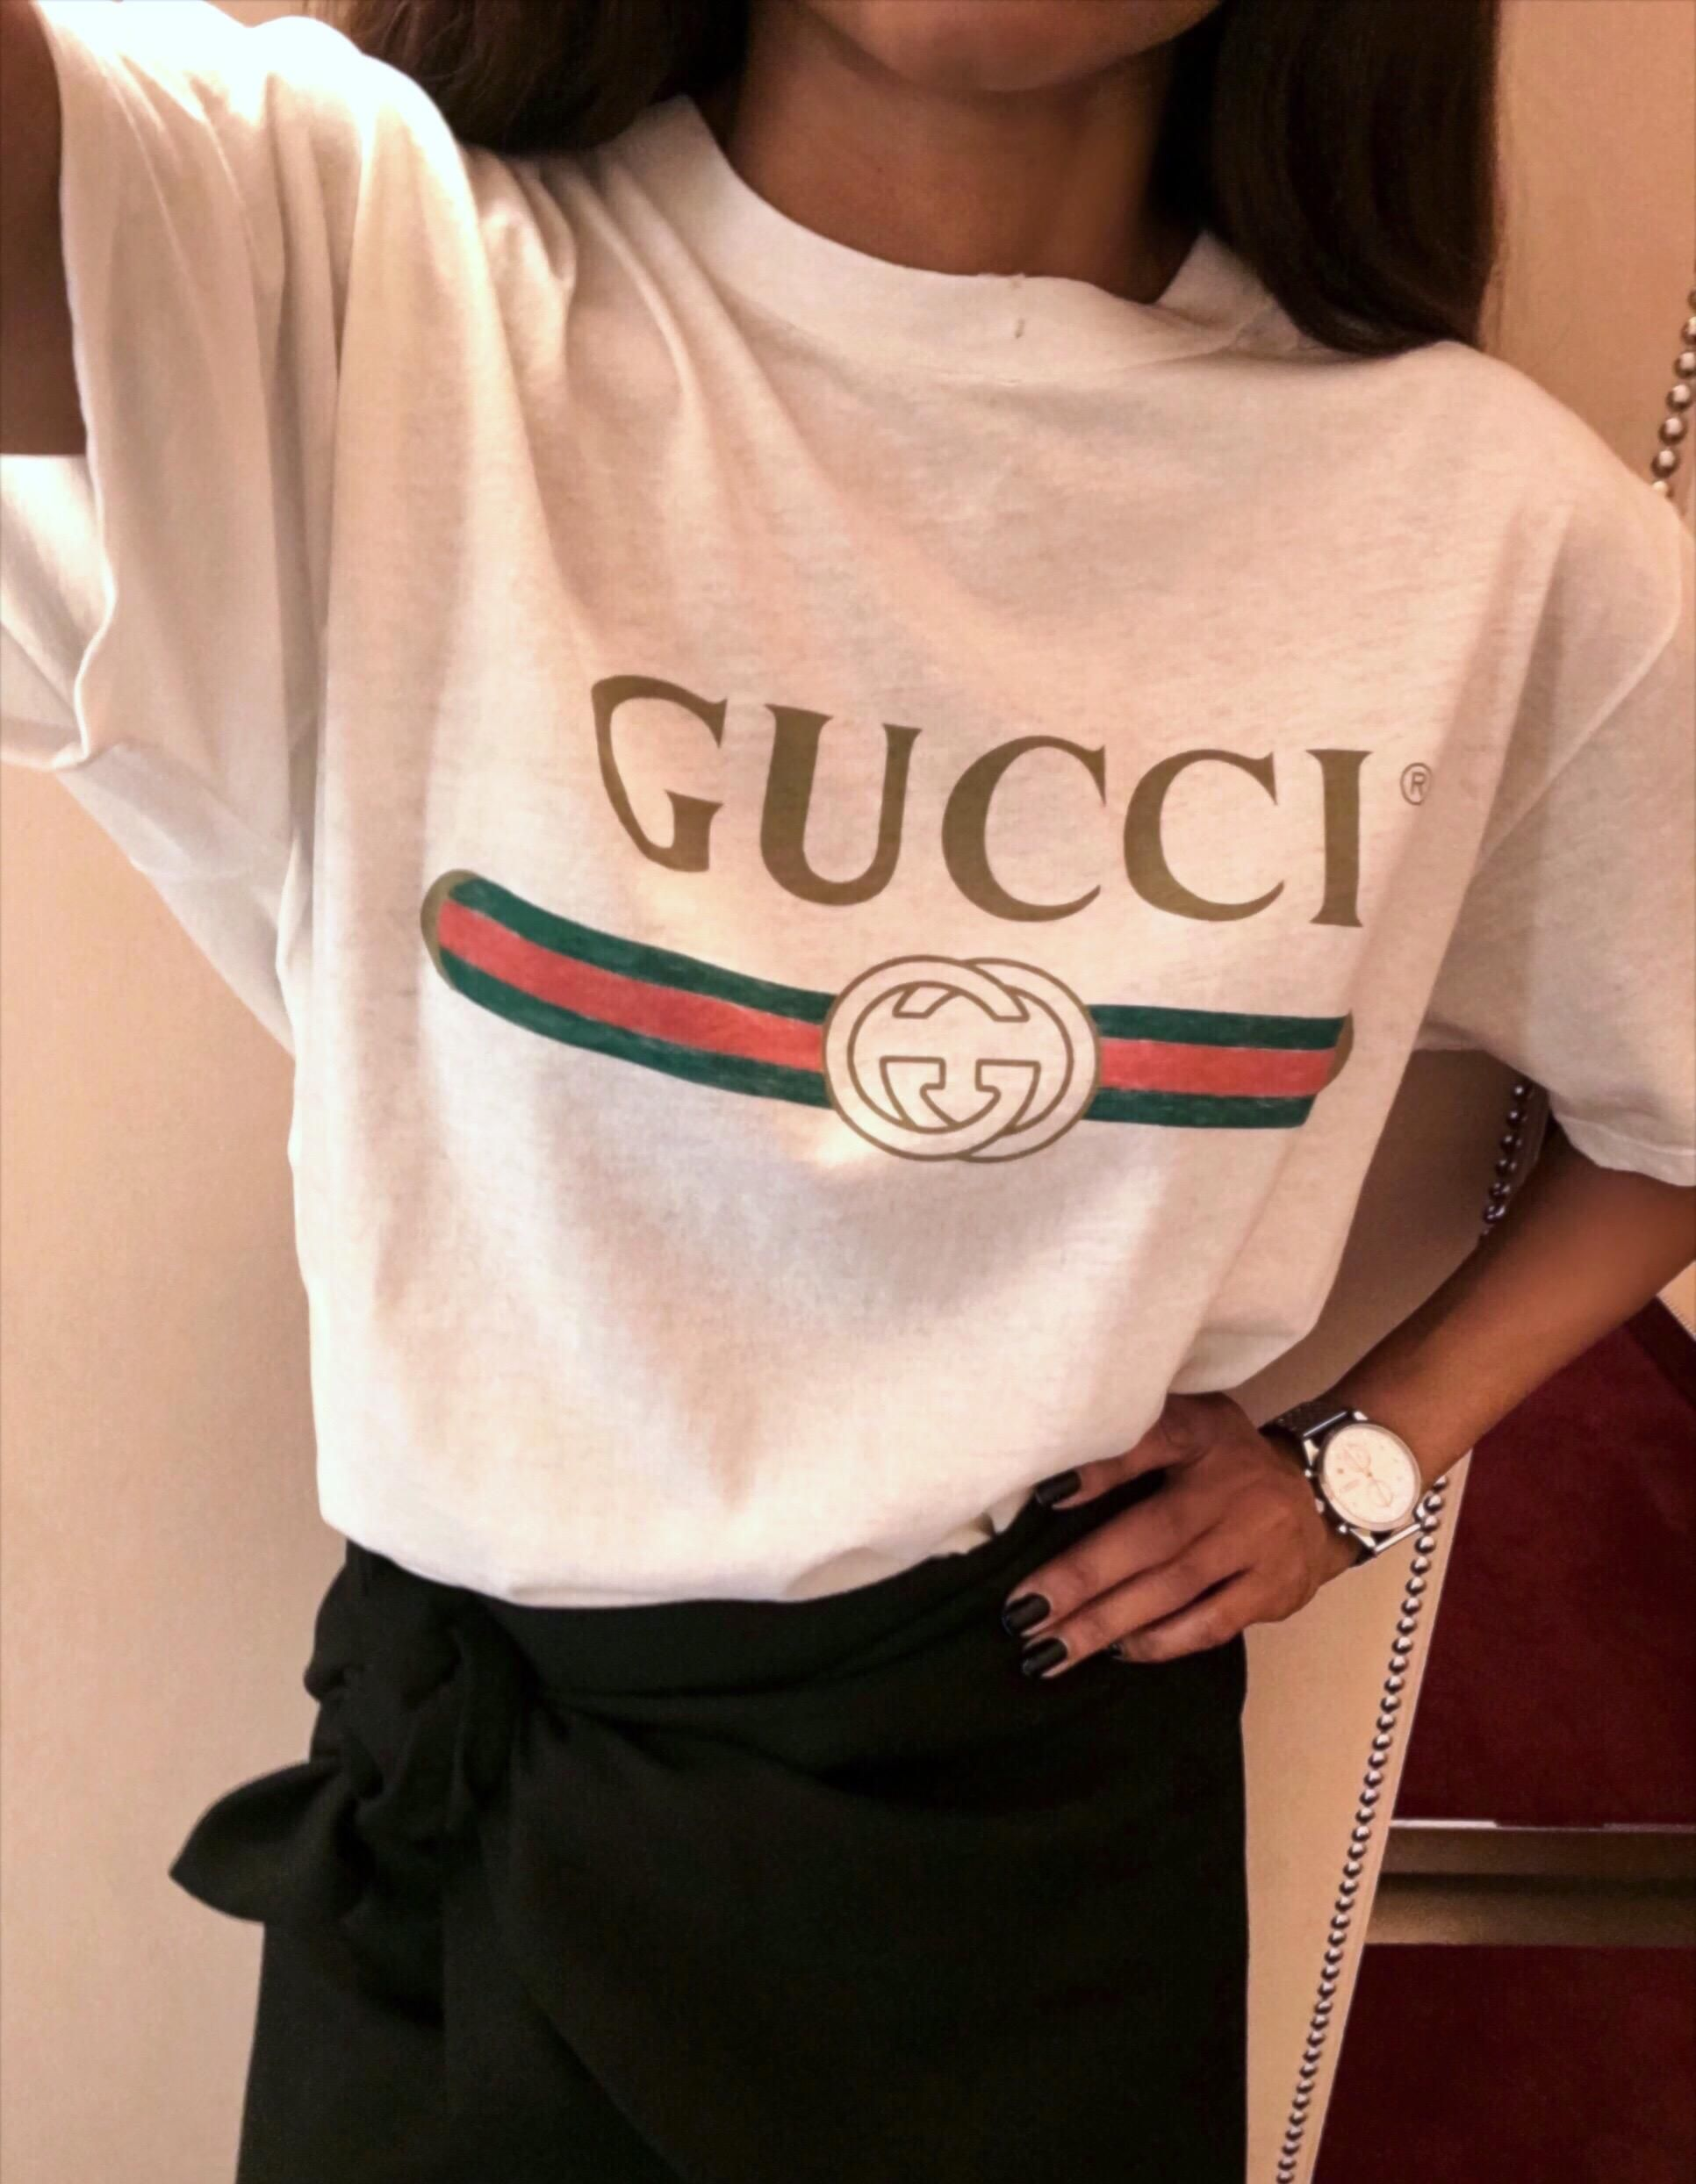 Logo Gucci Tops Women Free Vector And Clipart Ideas